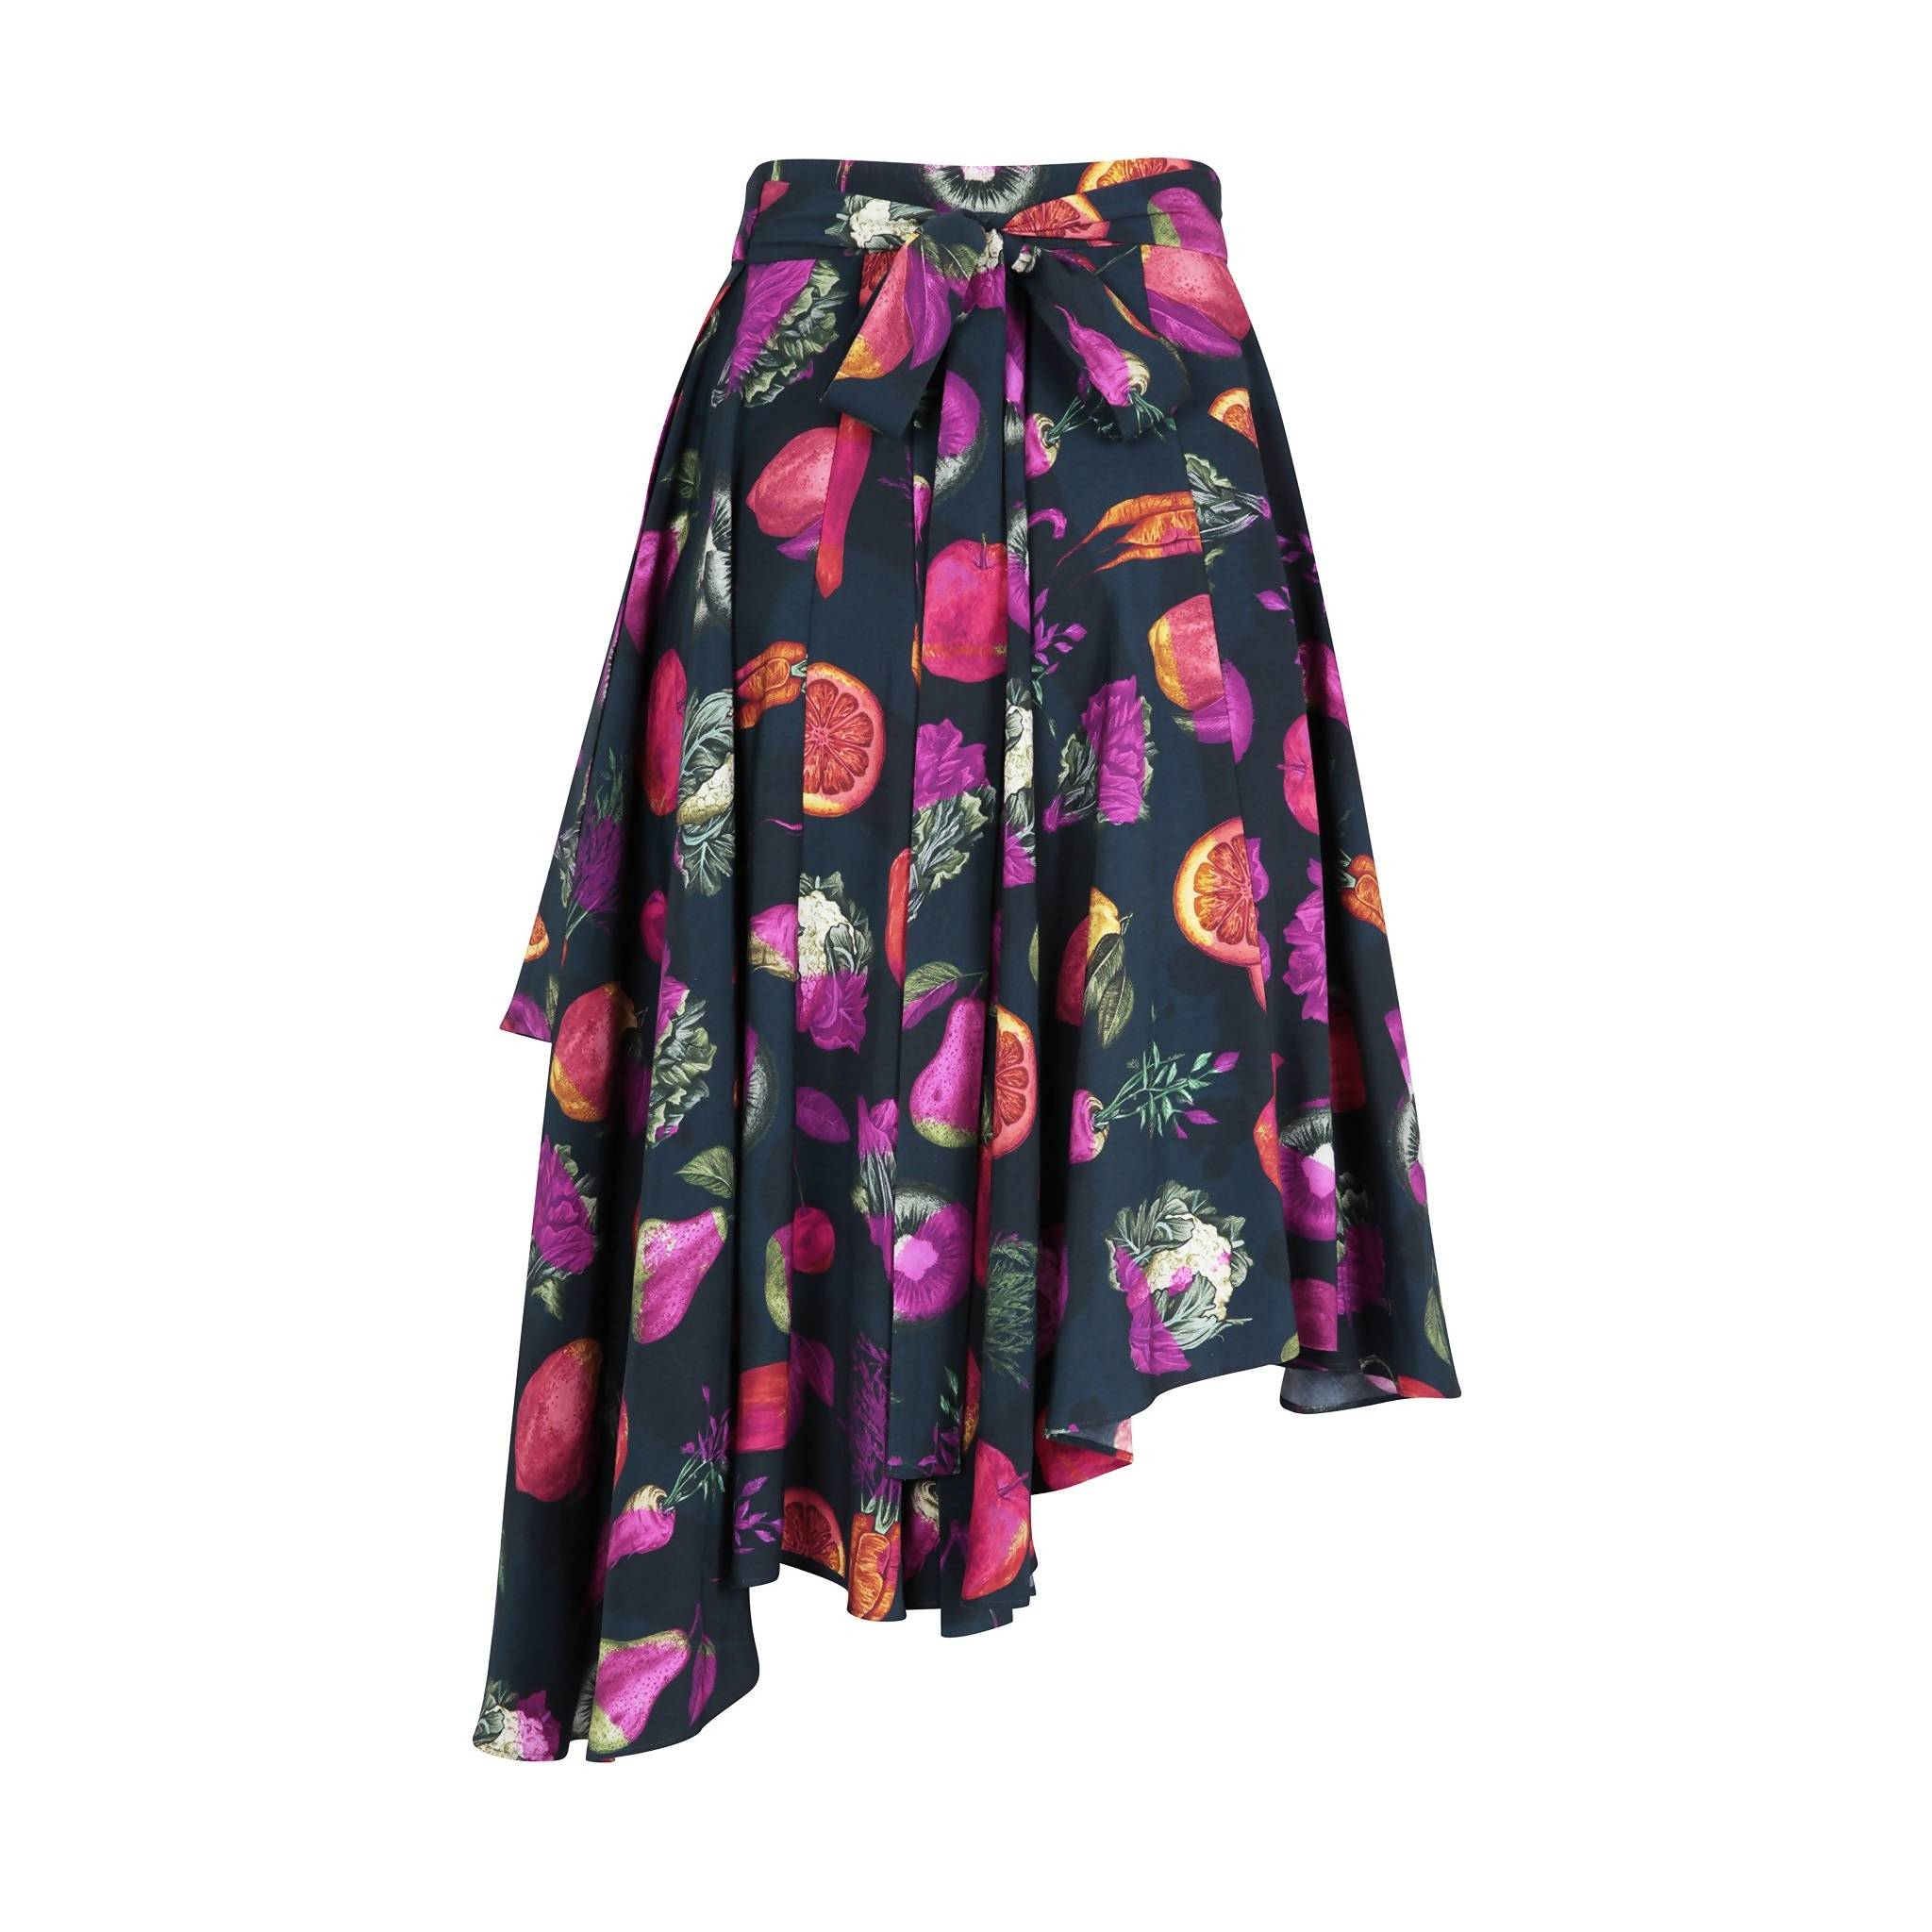 Pesticide Wrap Skirt